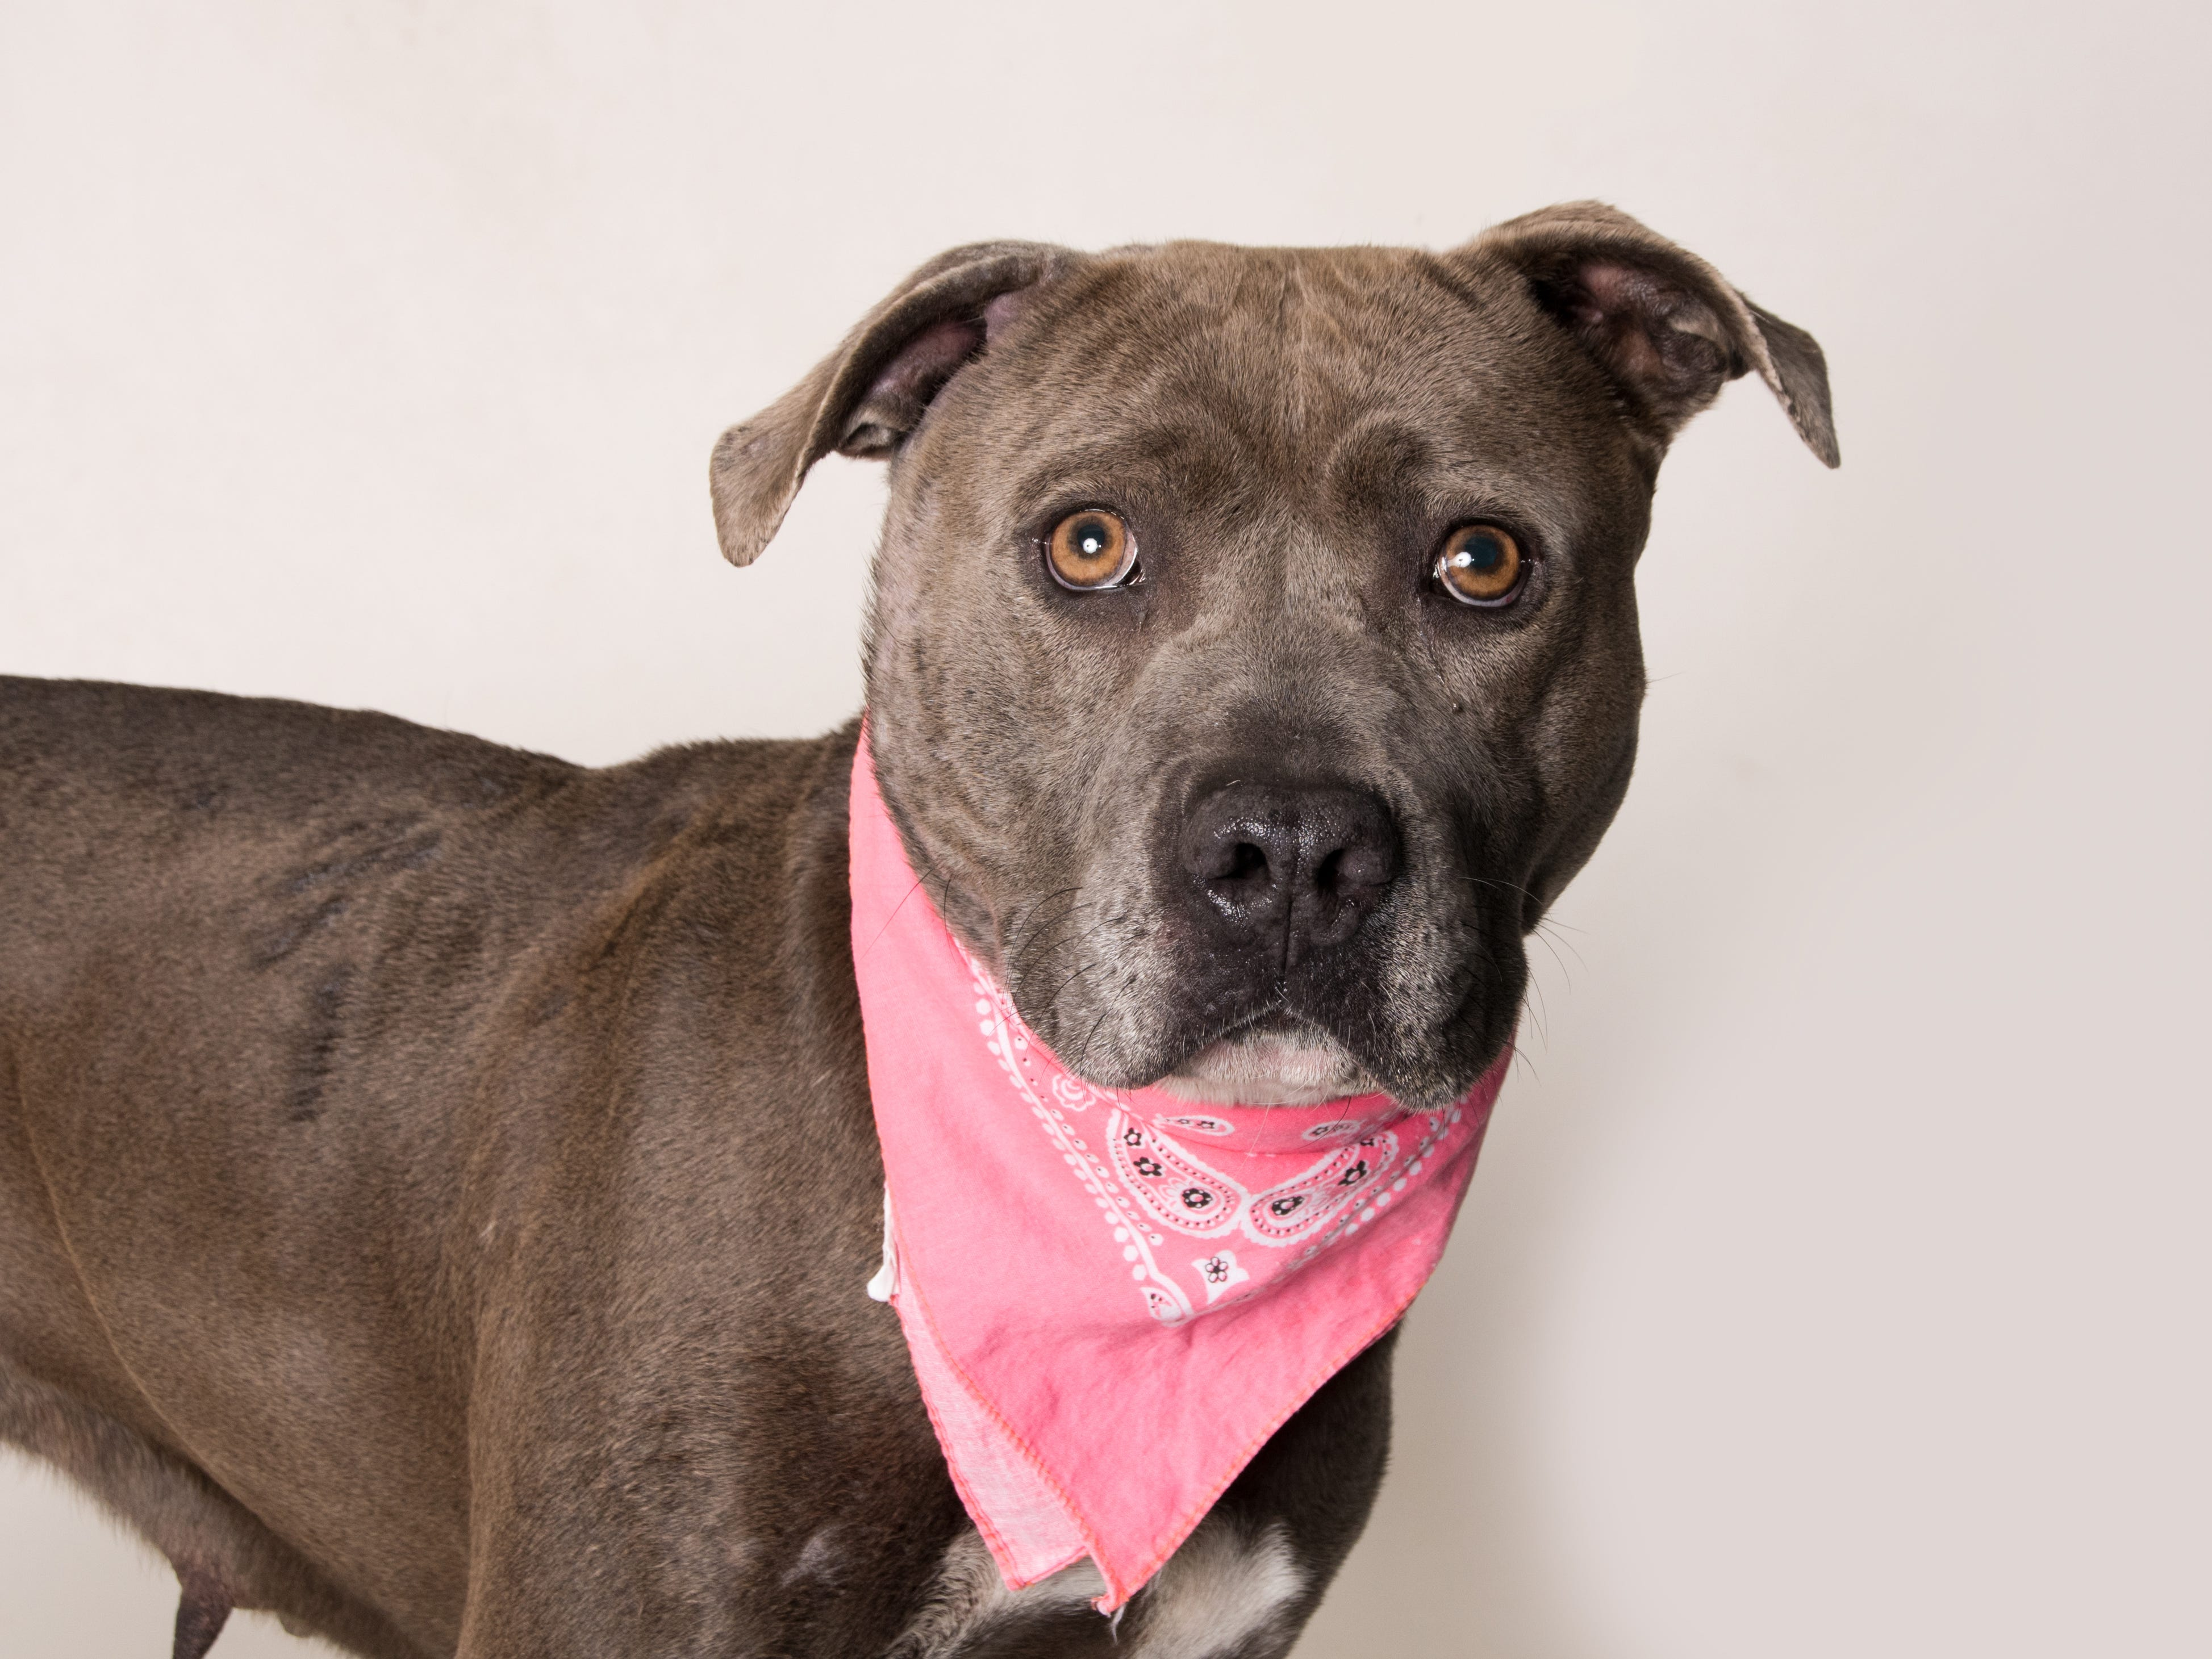 """Here are five top reasons why you need to meet Cypress: She is cute. She walks well on leash. She is treat-motivated and knows """"sit."""" She loves attention. You need her! So come meet Cypress at the Camarillo location of Ventura County Animal Services, 600 Aviation Drive. The shelter is open from 1 to 6 p.m. Tuesday through Sunday.Your new family member is waiting! For more information or to search for other animals, go to www.vcas.us."""